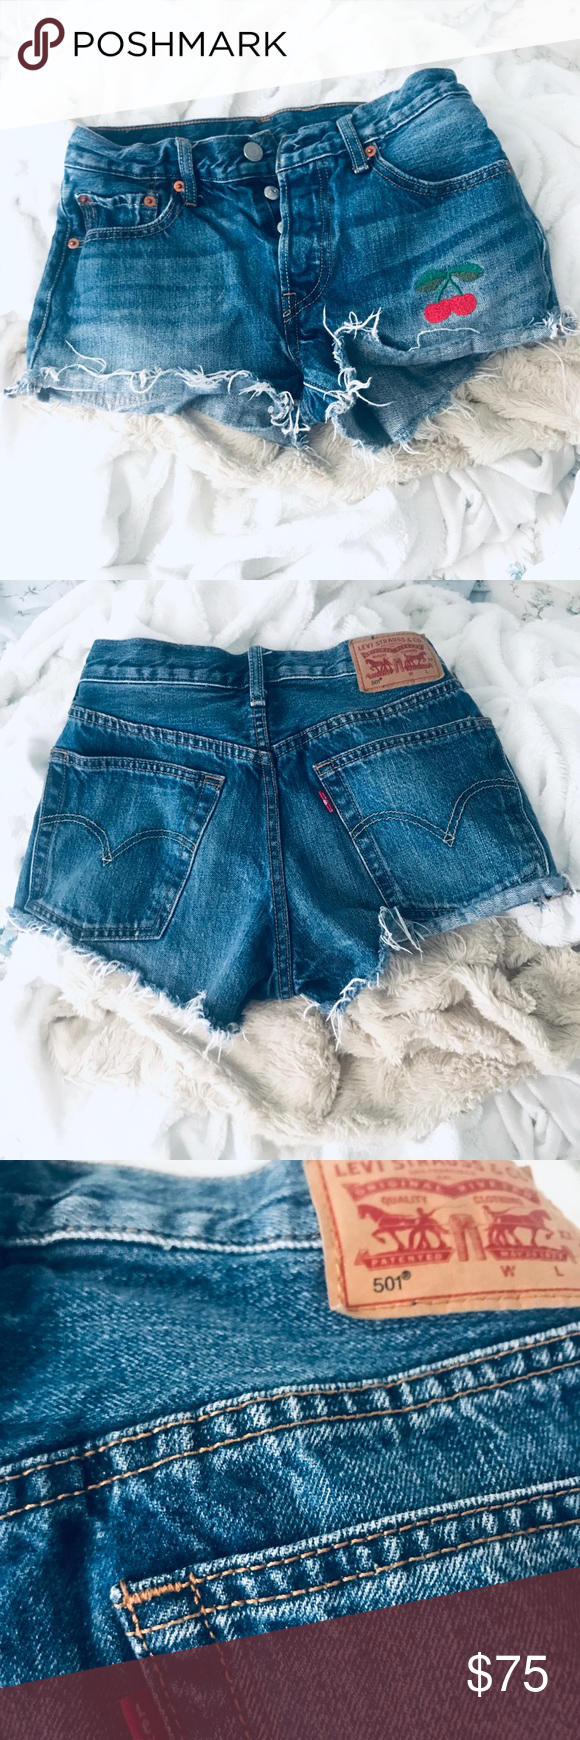 1e575f8af2 501 high waist shorts worn once , rare design accept offers Levi's Shorts  Jean Shorts